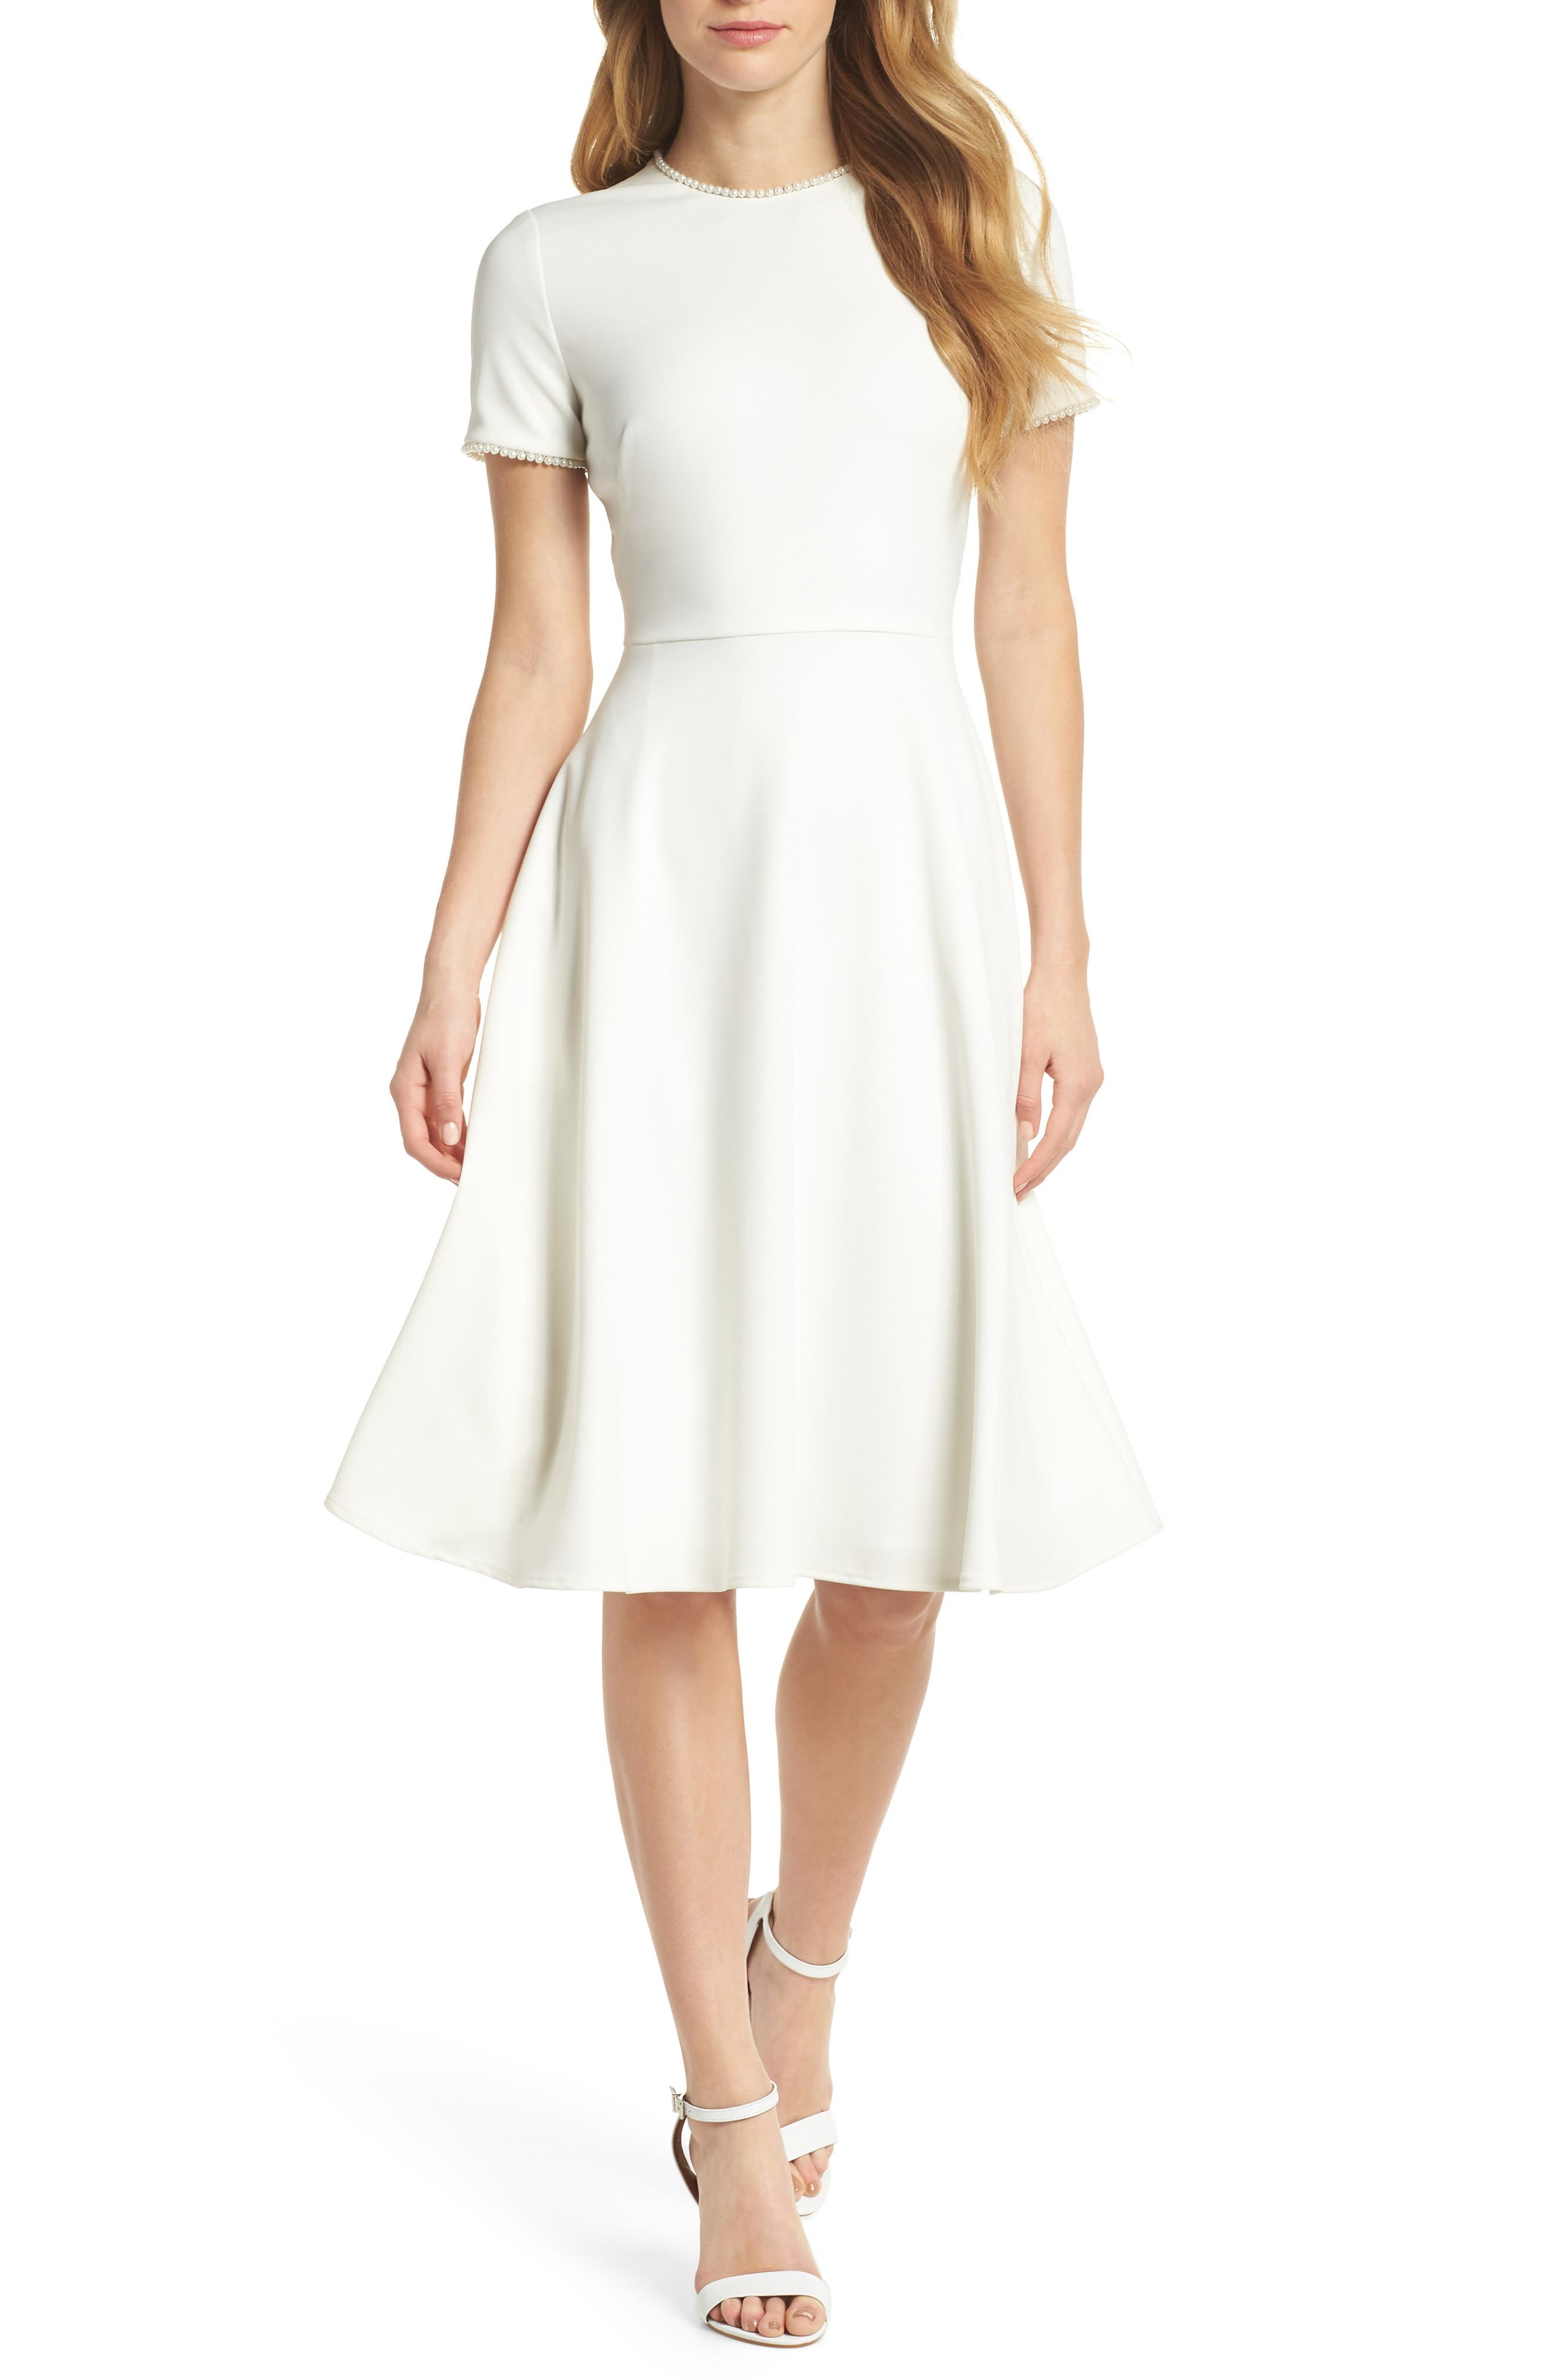 Gal Meets Glam Collection Victoria Pearly Trim Fit & Flare Dress, Ivory (Nordstrom Exclusive)